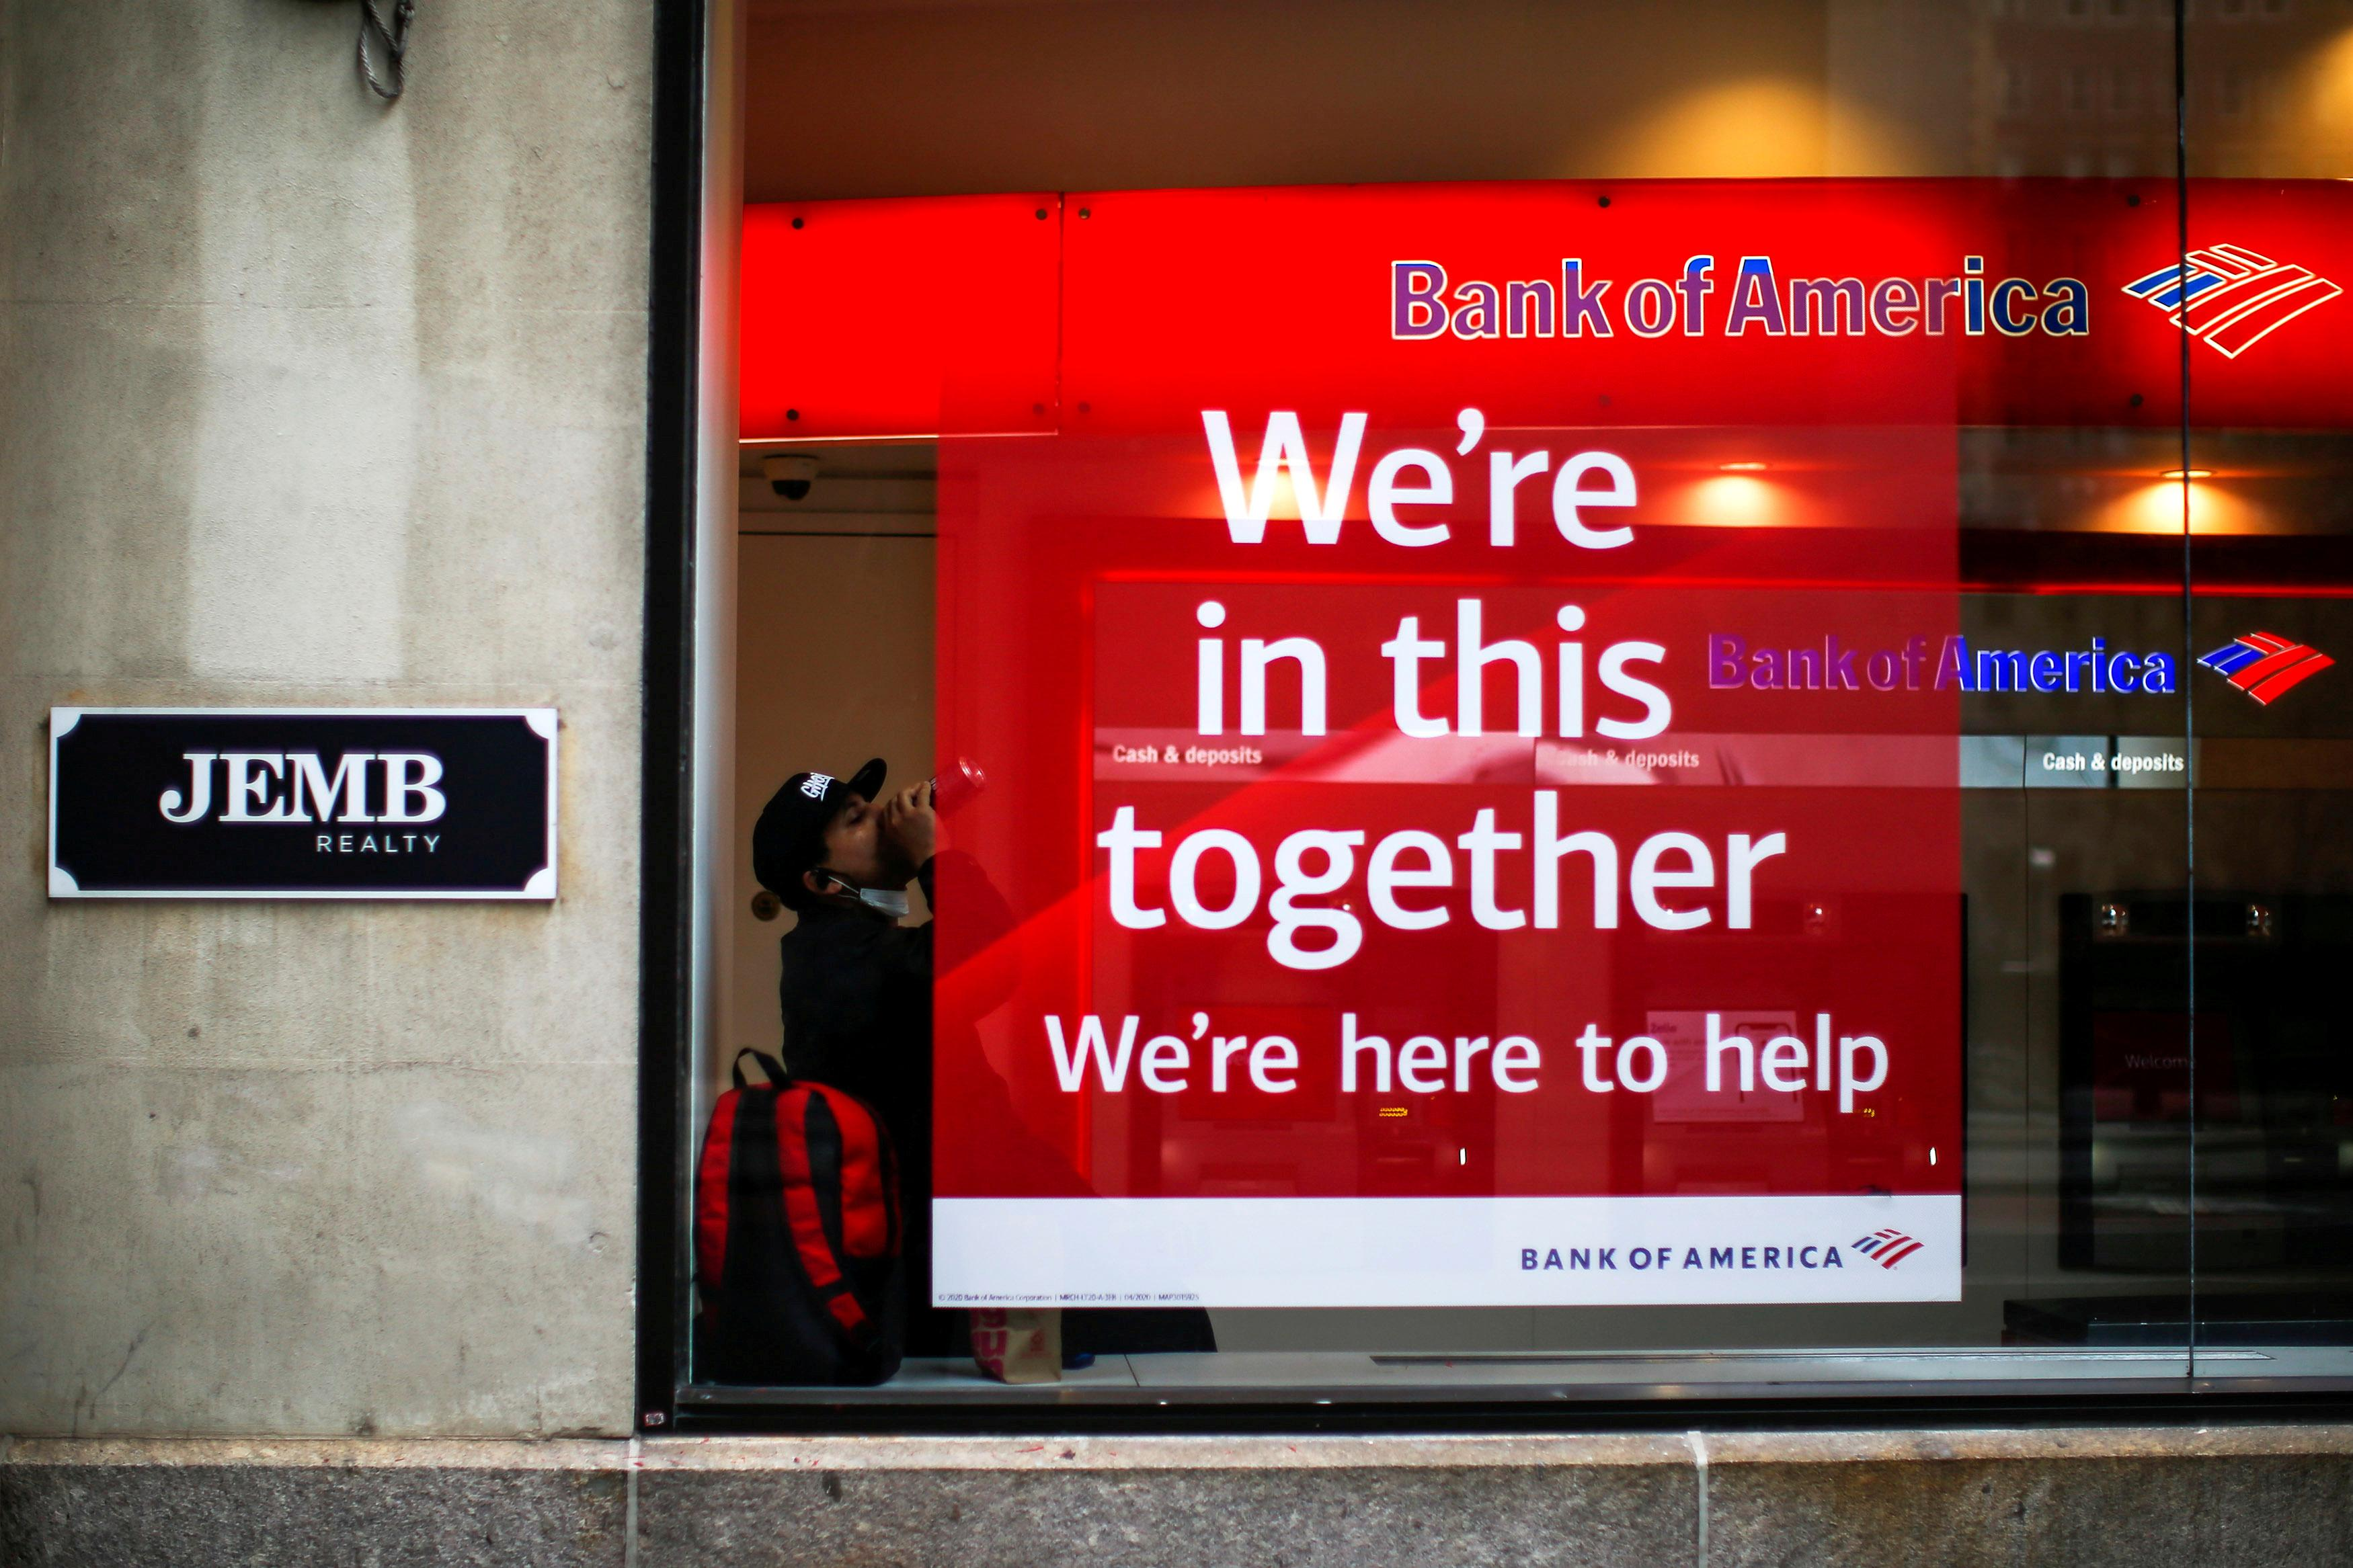 Global banks ramp up preparations for U.S. election night chaos, sources say